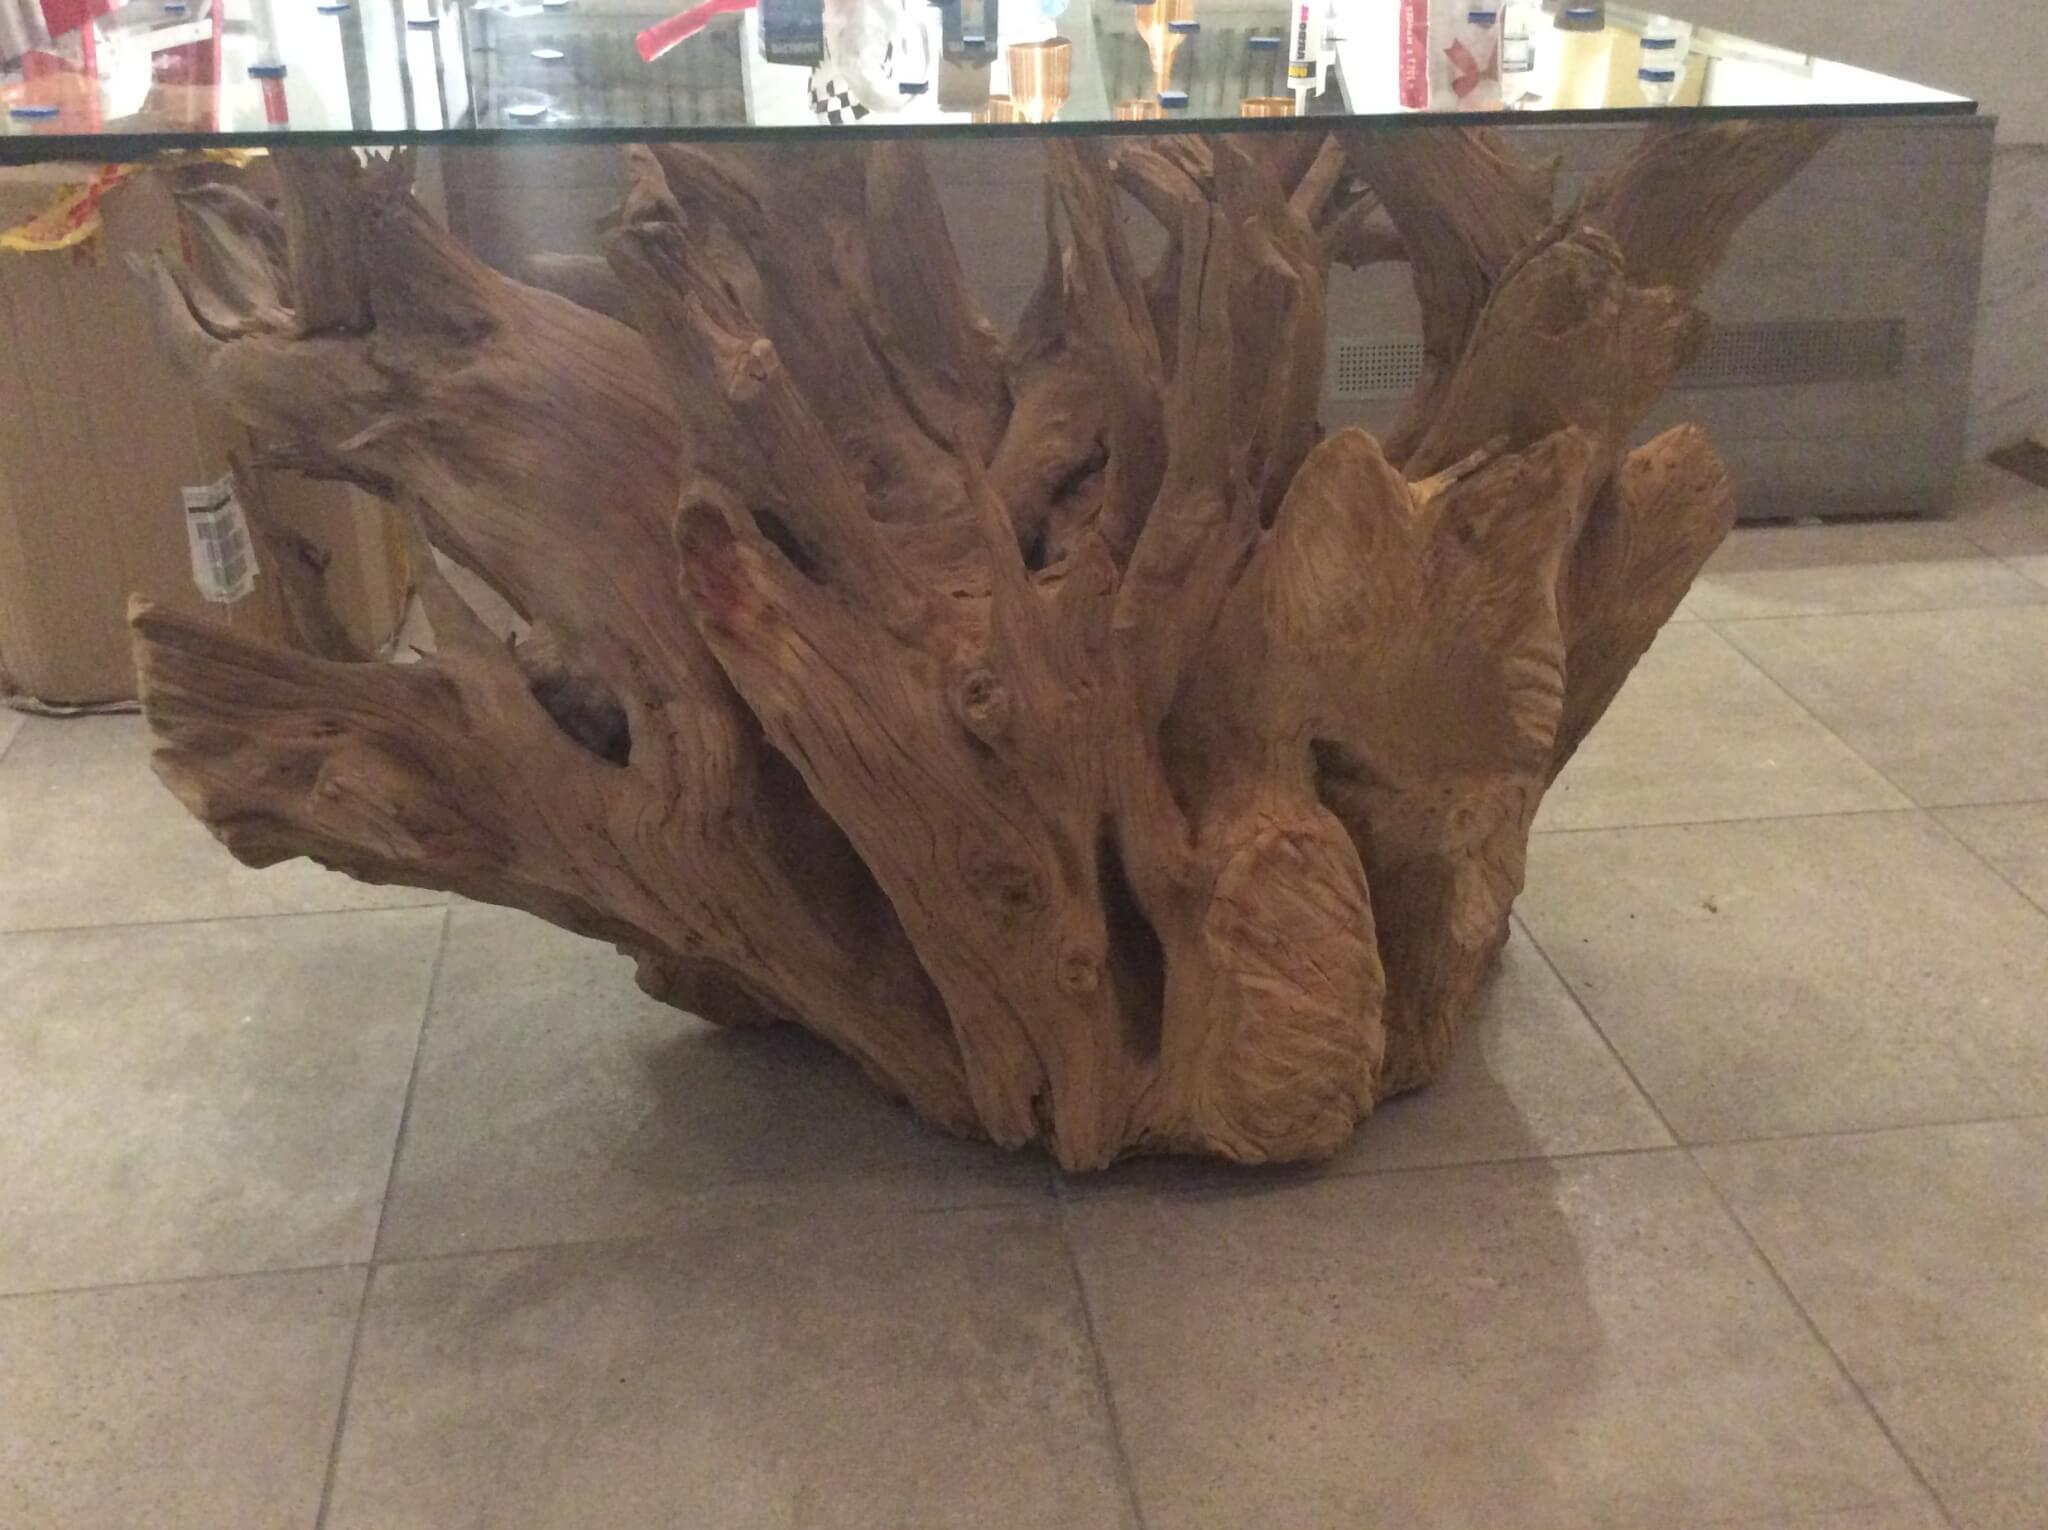 Tree Root Dining Tables Unique Wild Wood Furniture